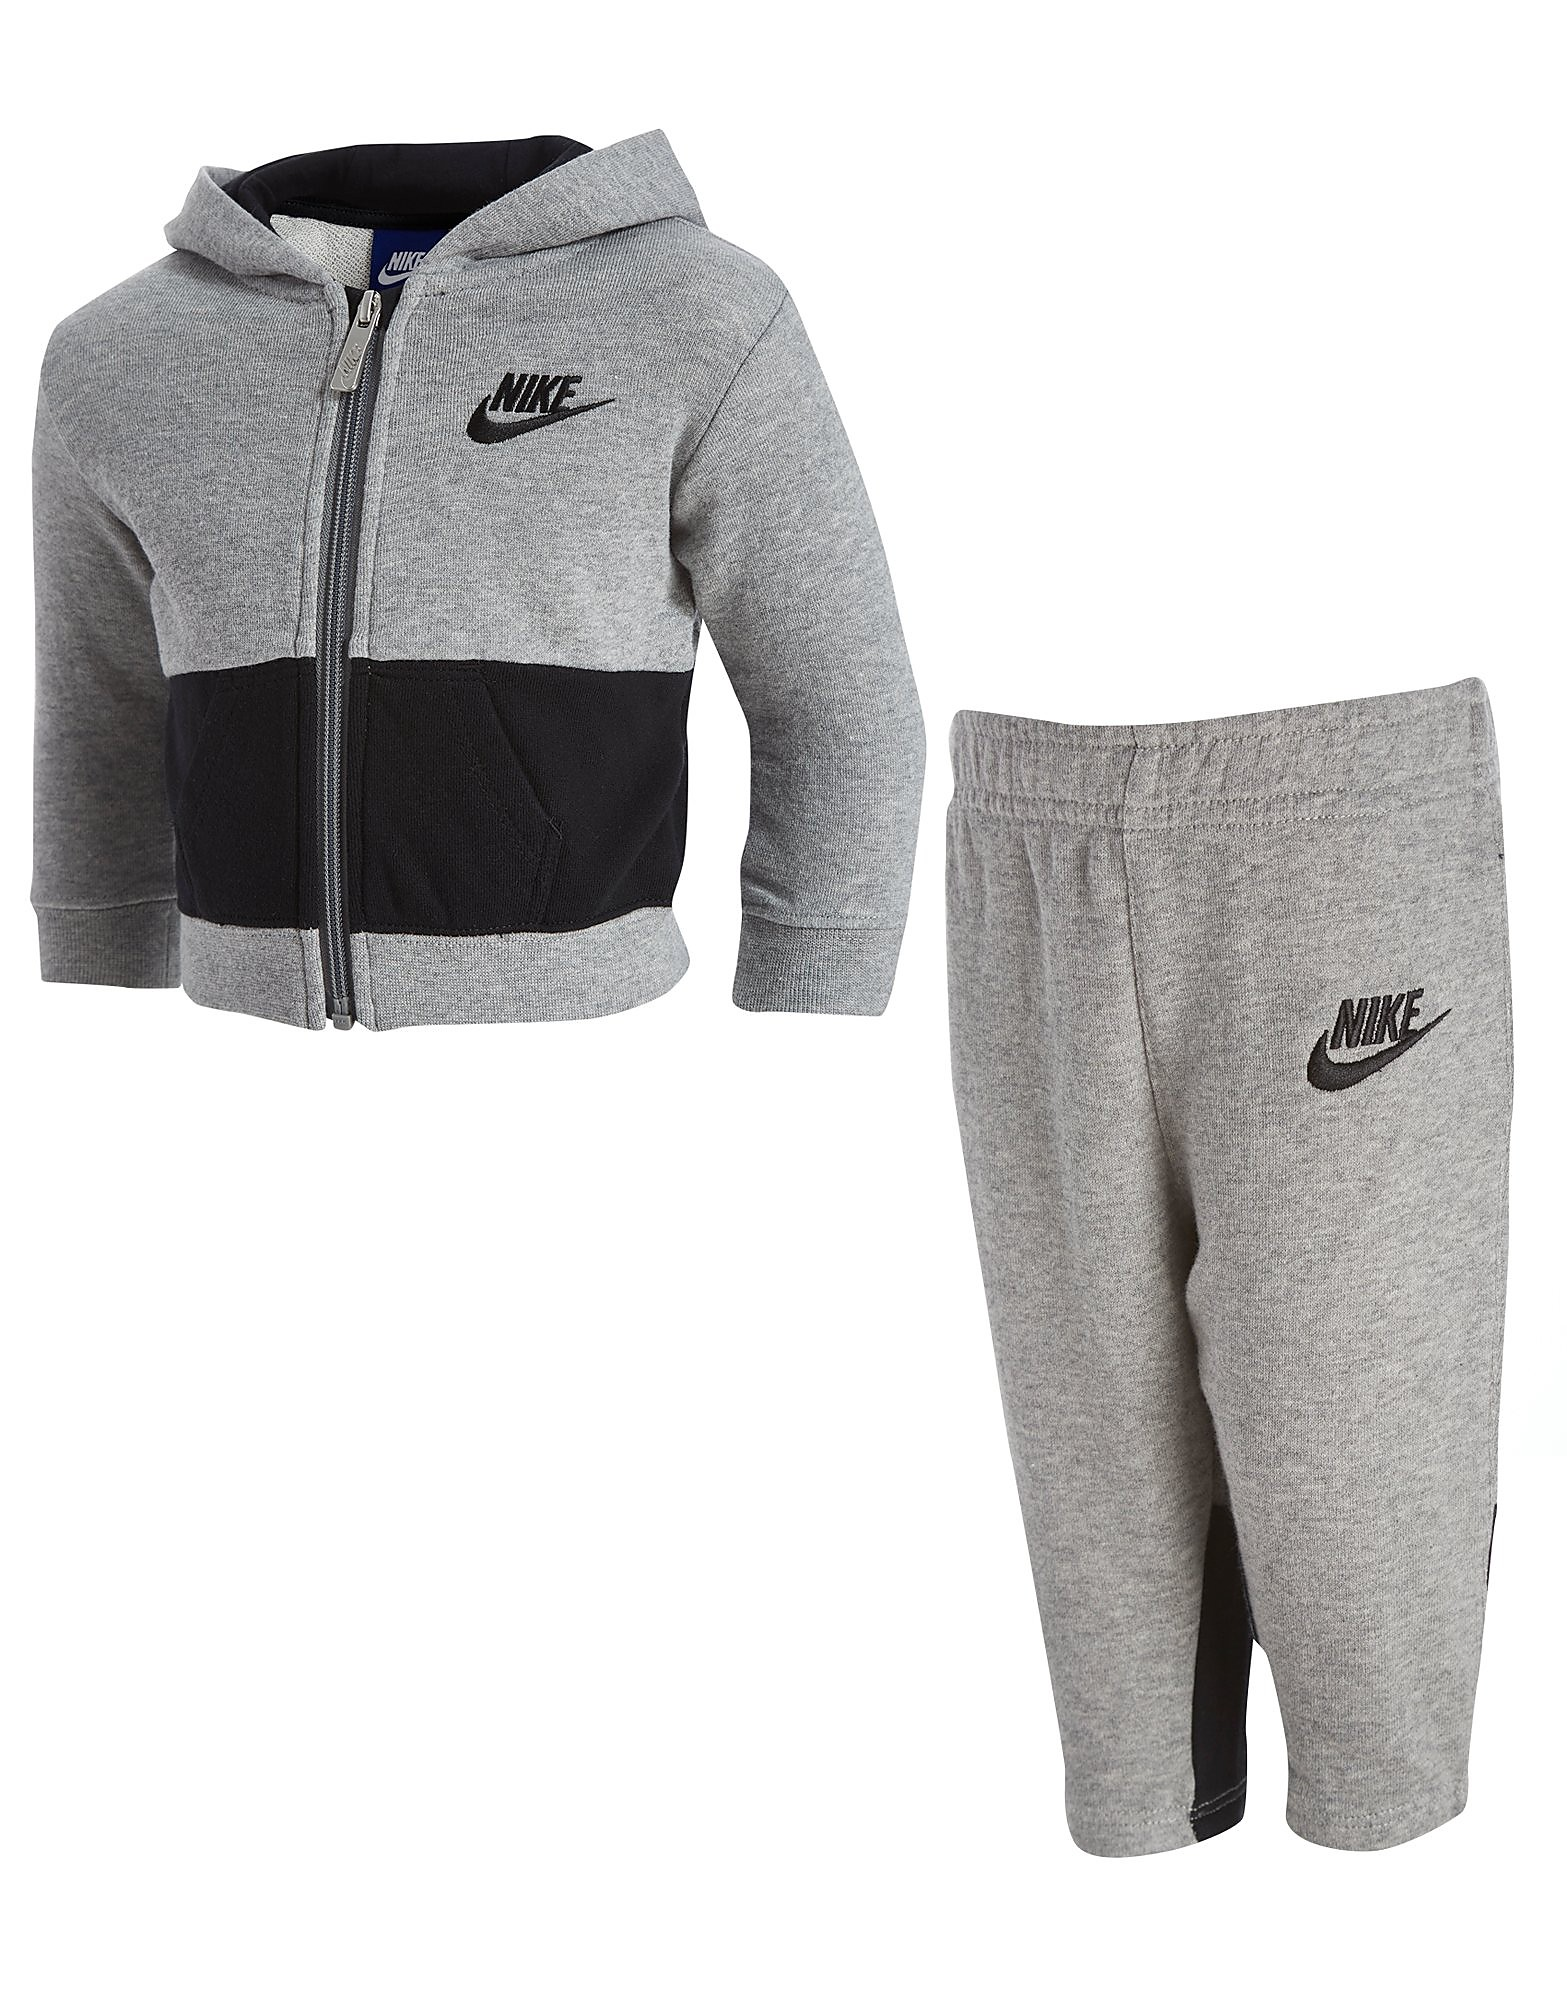 Nike Woven Suit Infant